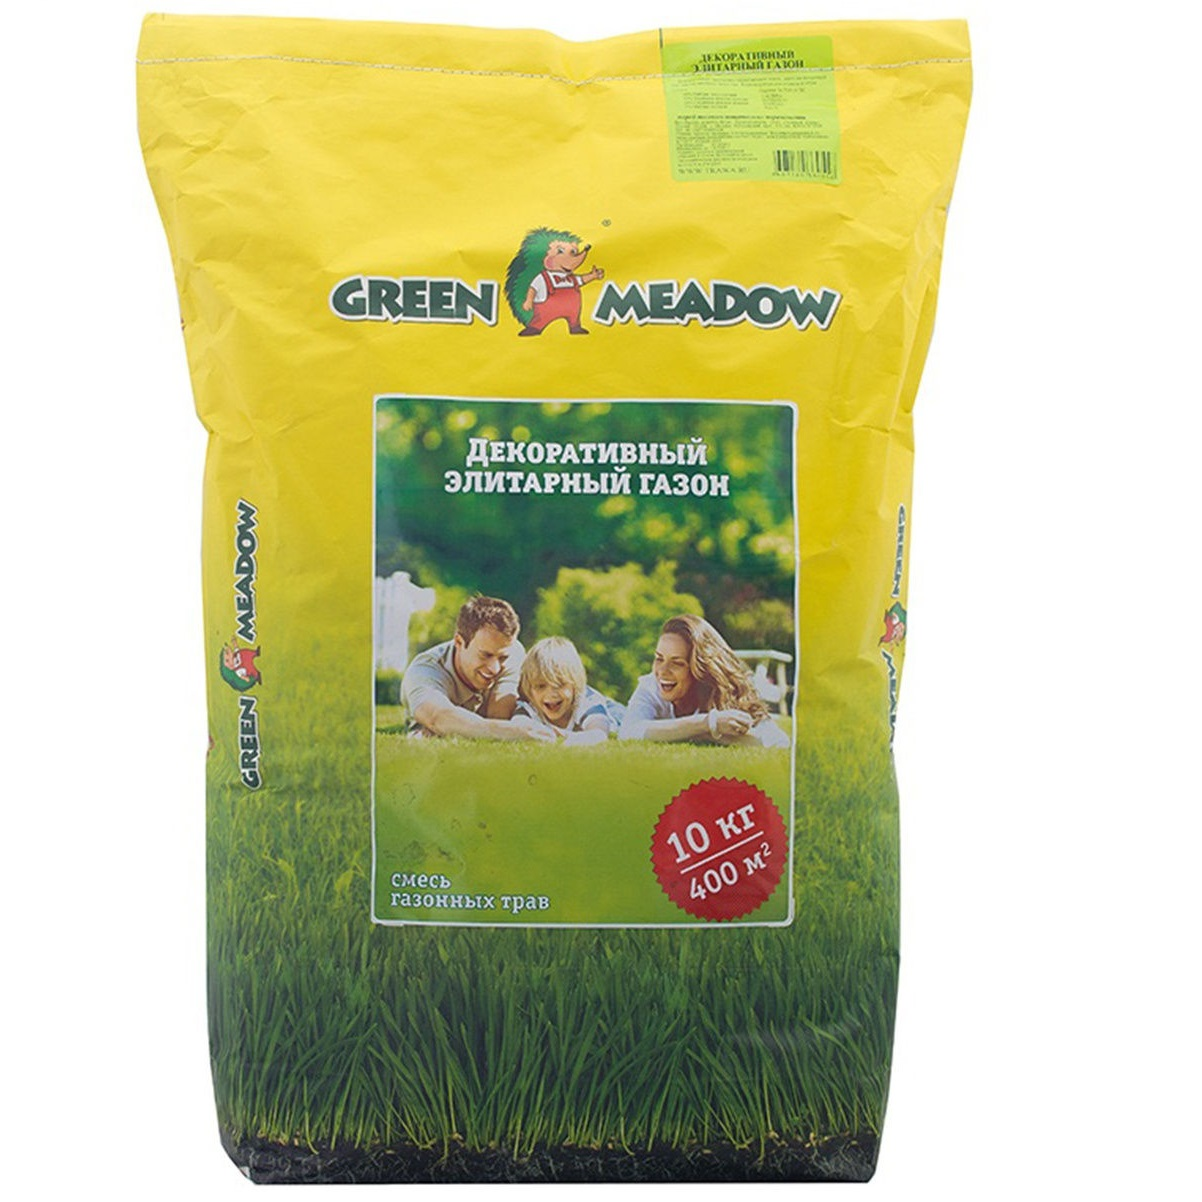 семена green meadow игровой газон 500 г Газон Green Meadow декоративный элитарный 10 кг